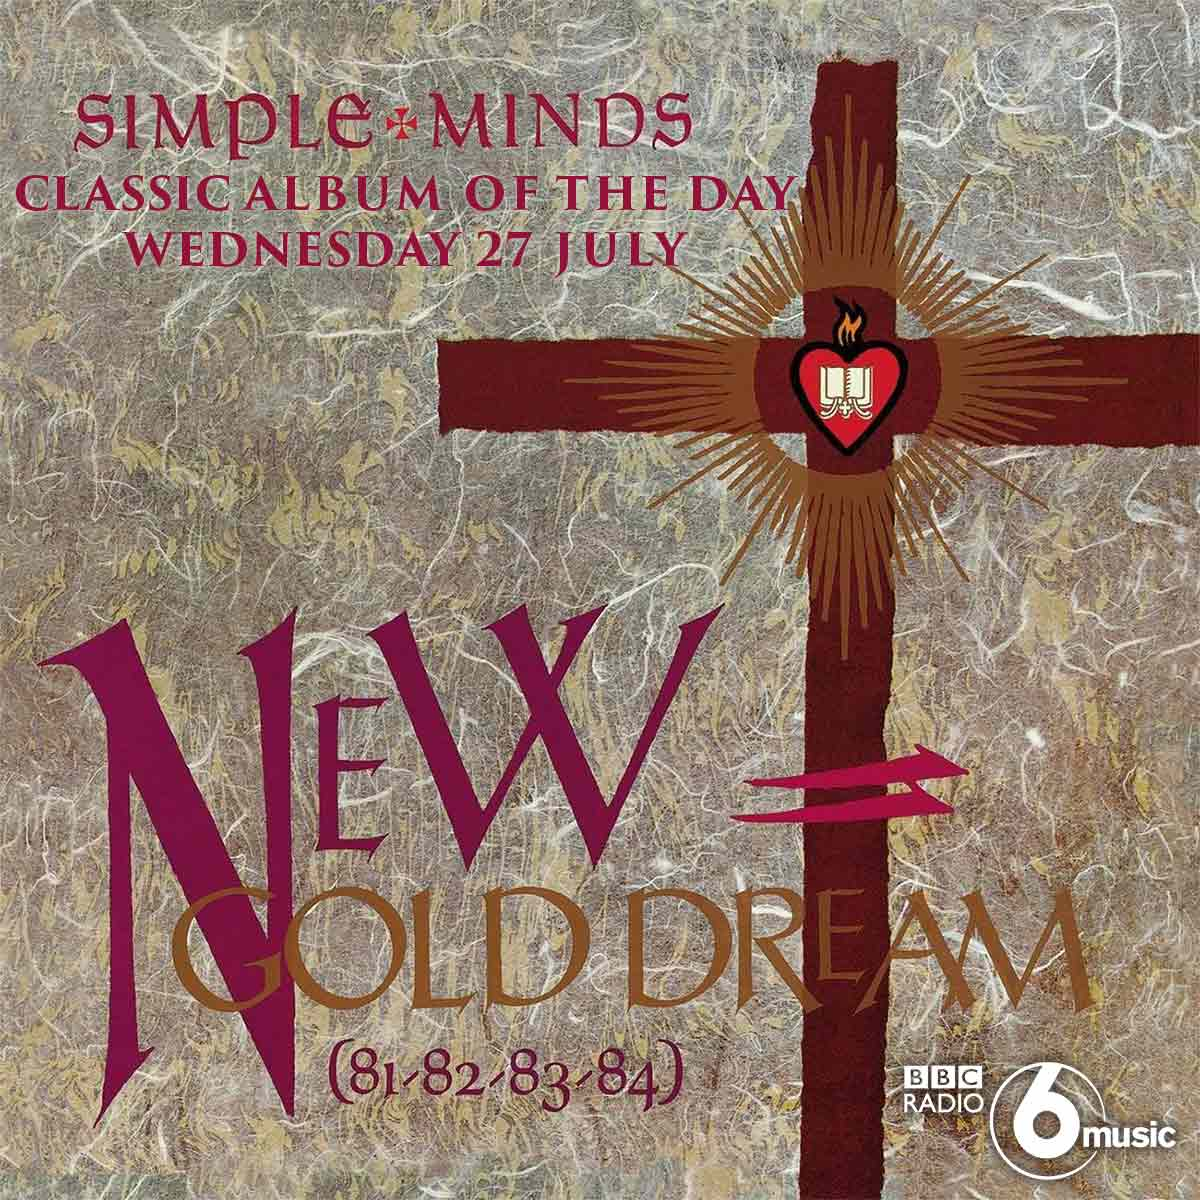 6M_AOTD_371_SIMPLE_MINDS_NGD_270716-1200